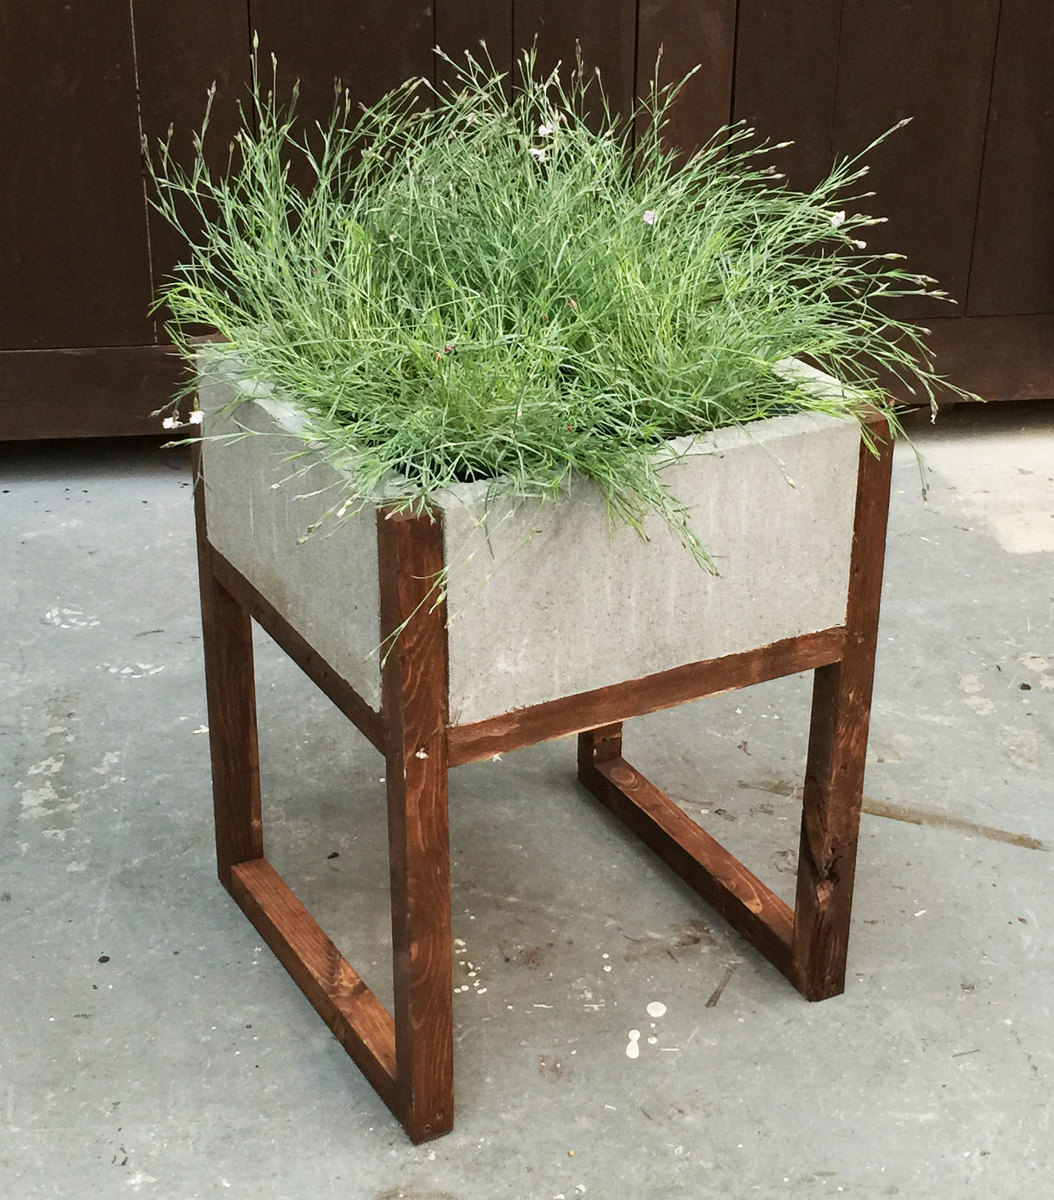 Ana White | Home Depot DIH Workshop Modern Paver Planter - DIY ...